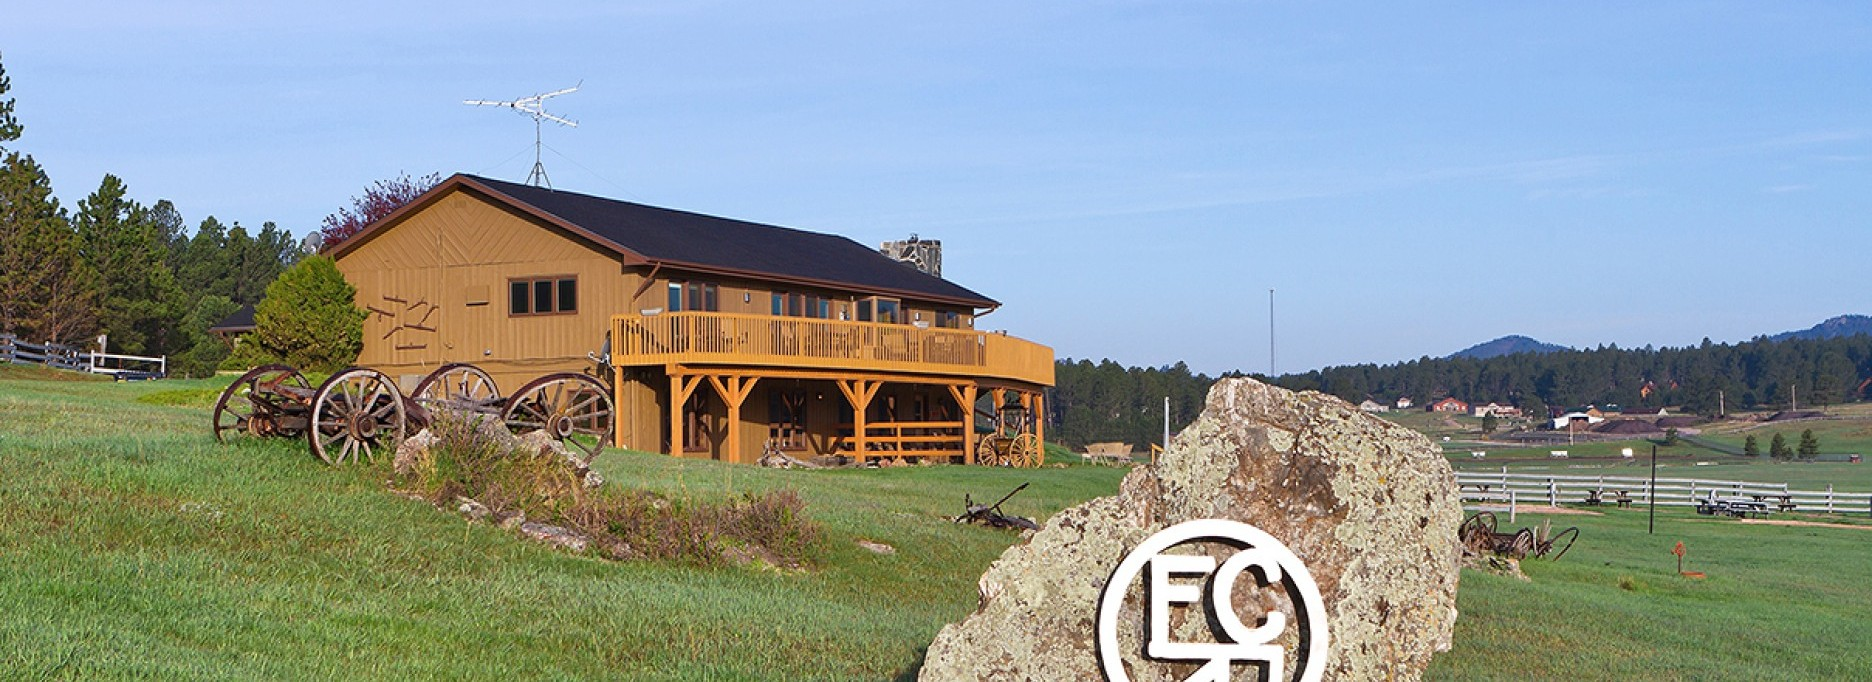 French Creek Ranch exterior